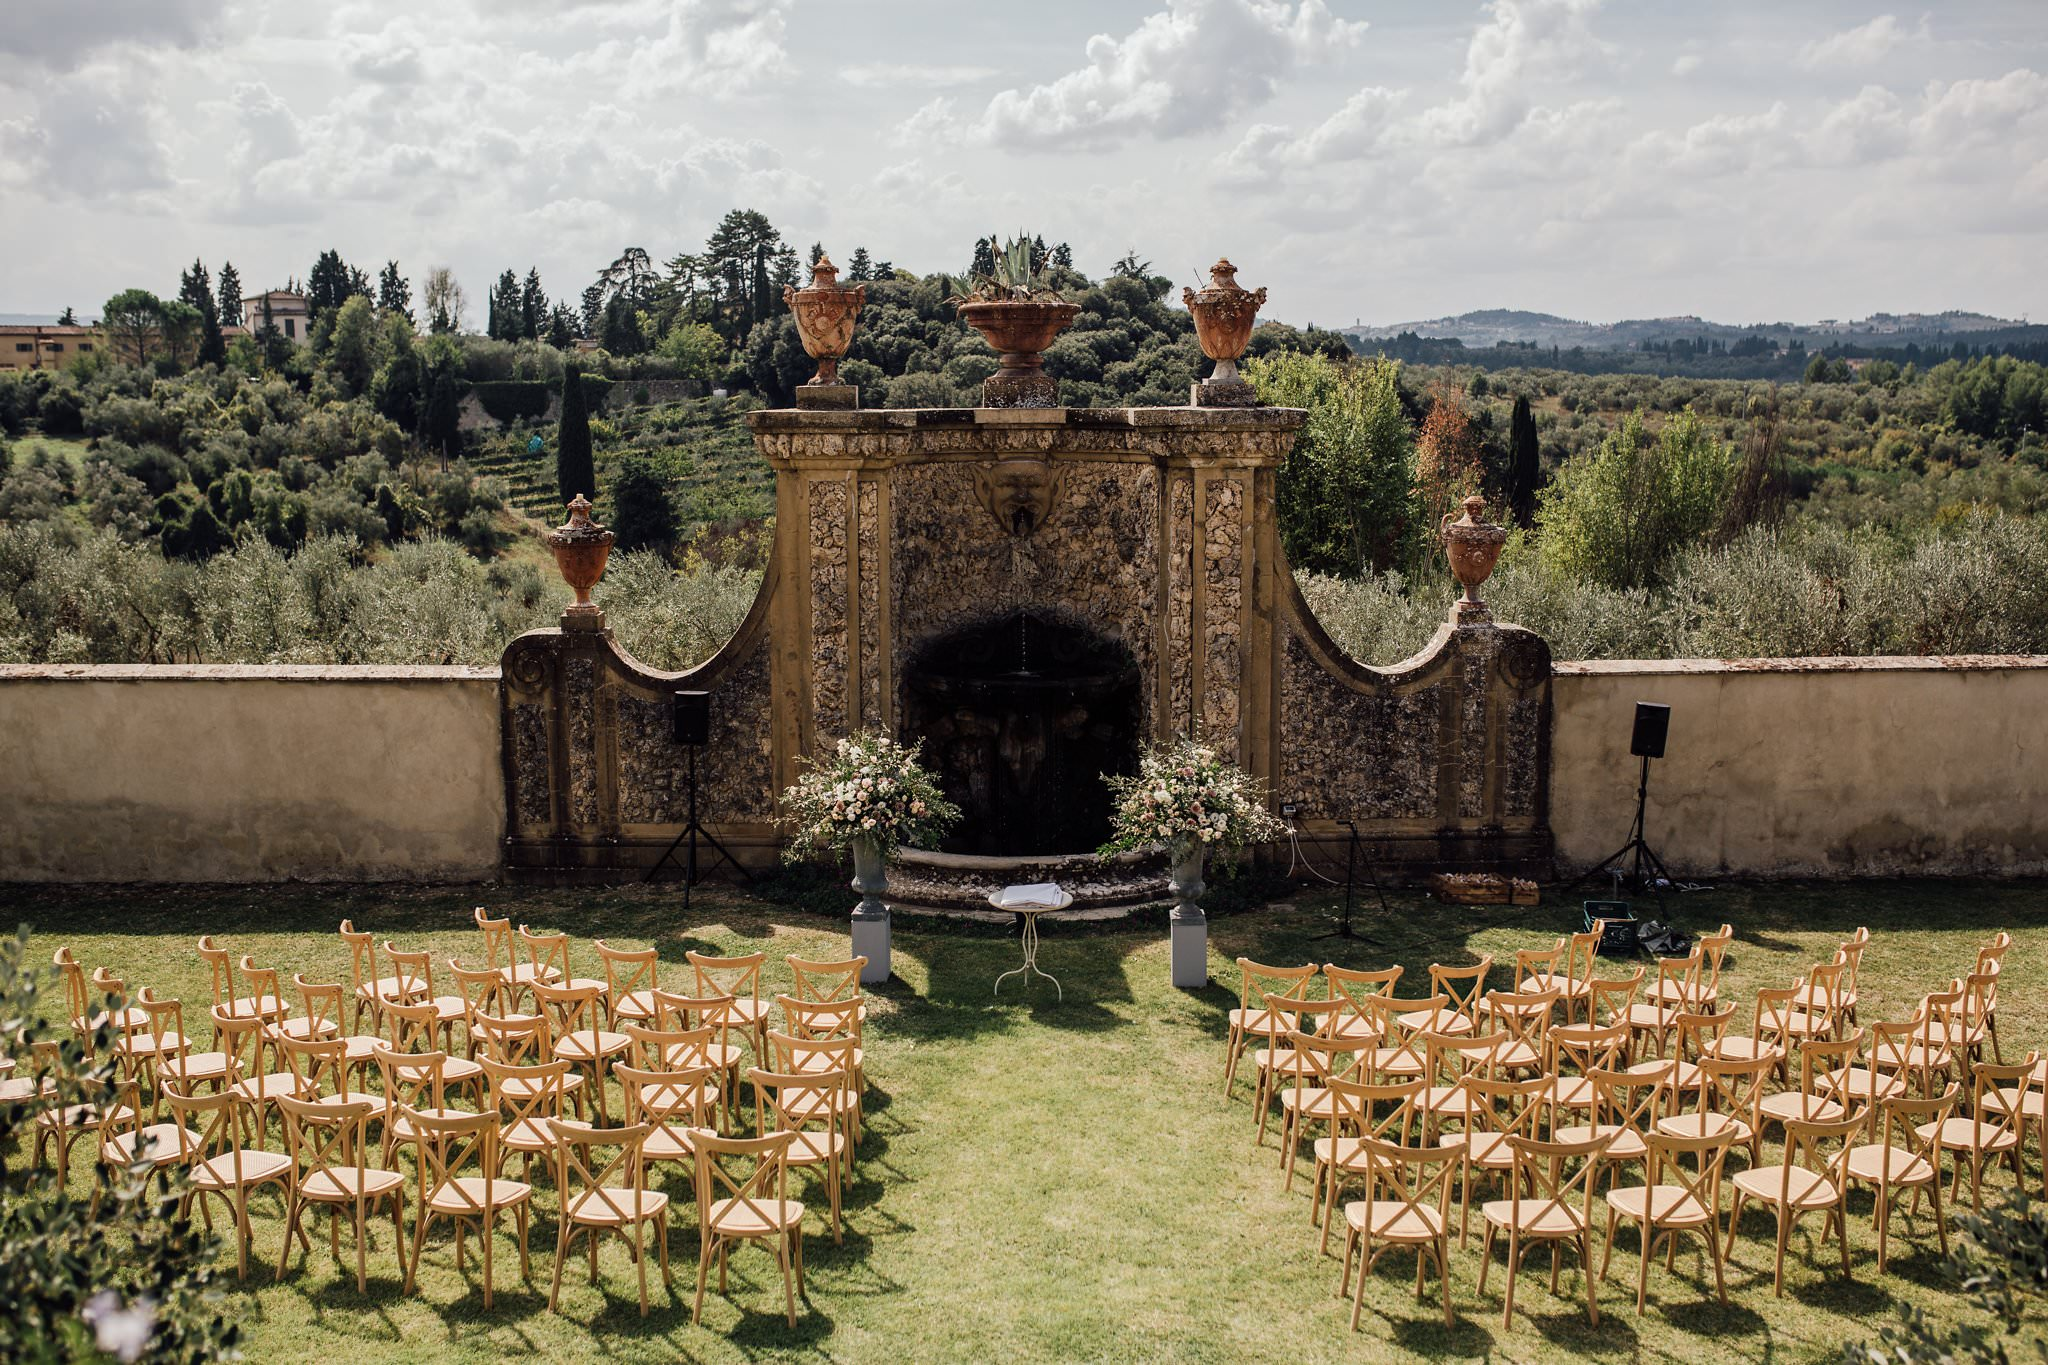 outdoor ceremony location in the Tuscan hills